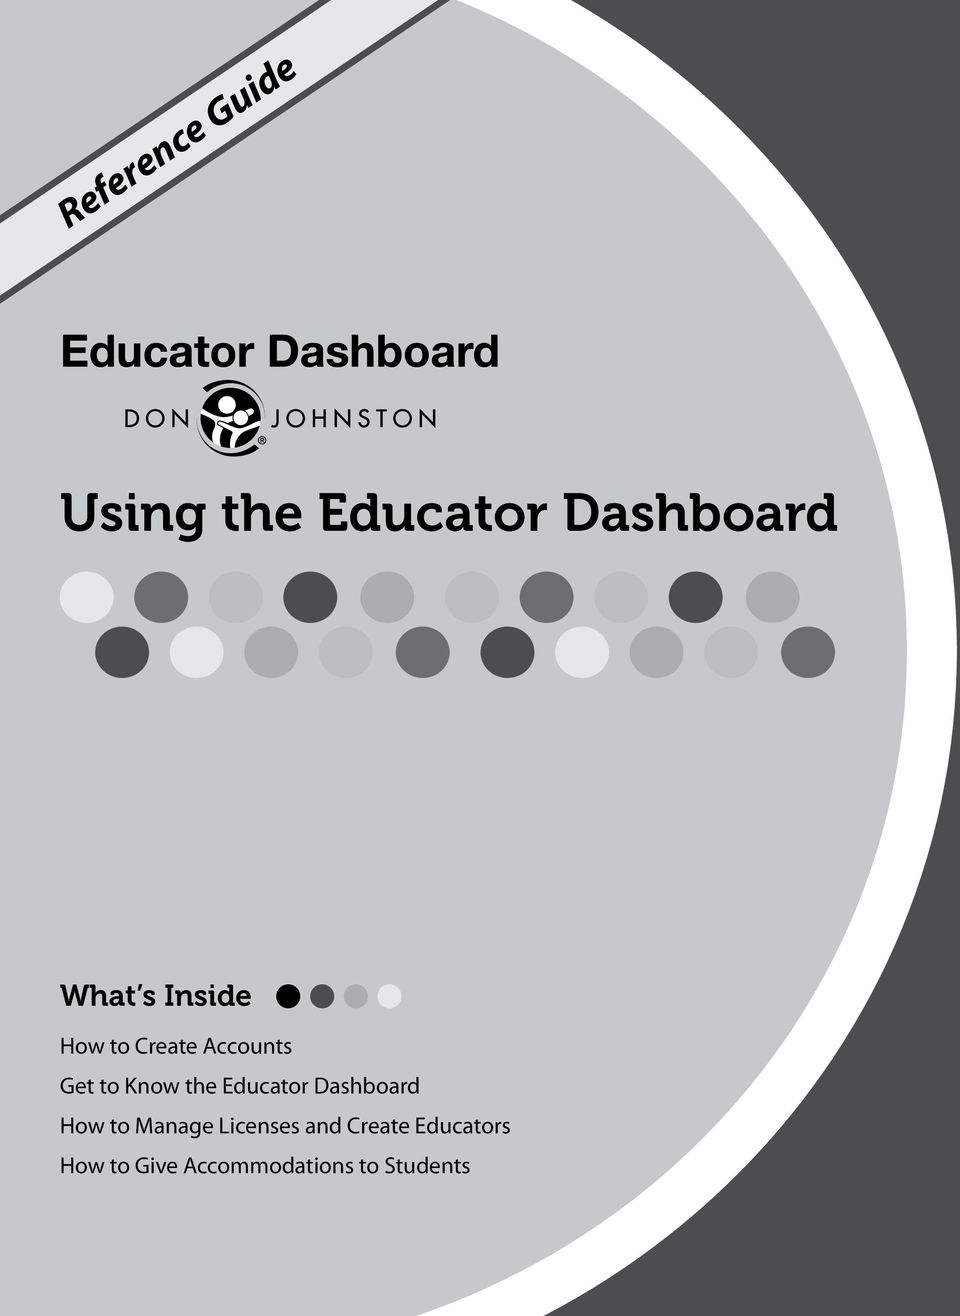 Educator Dashboard How to Manage Licenses and